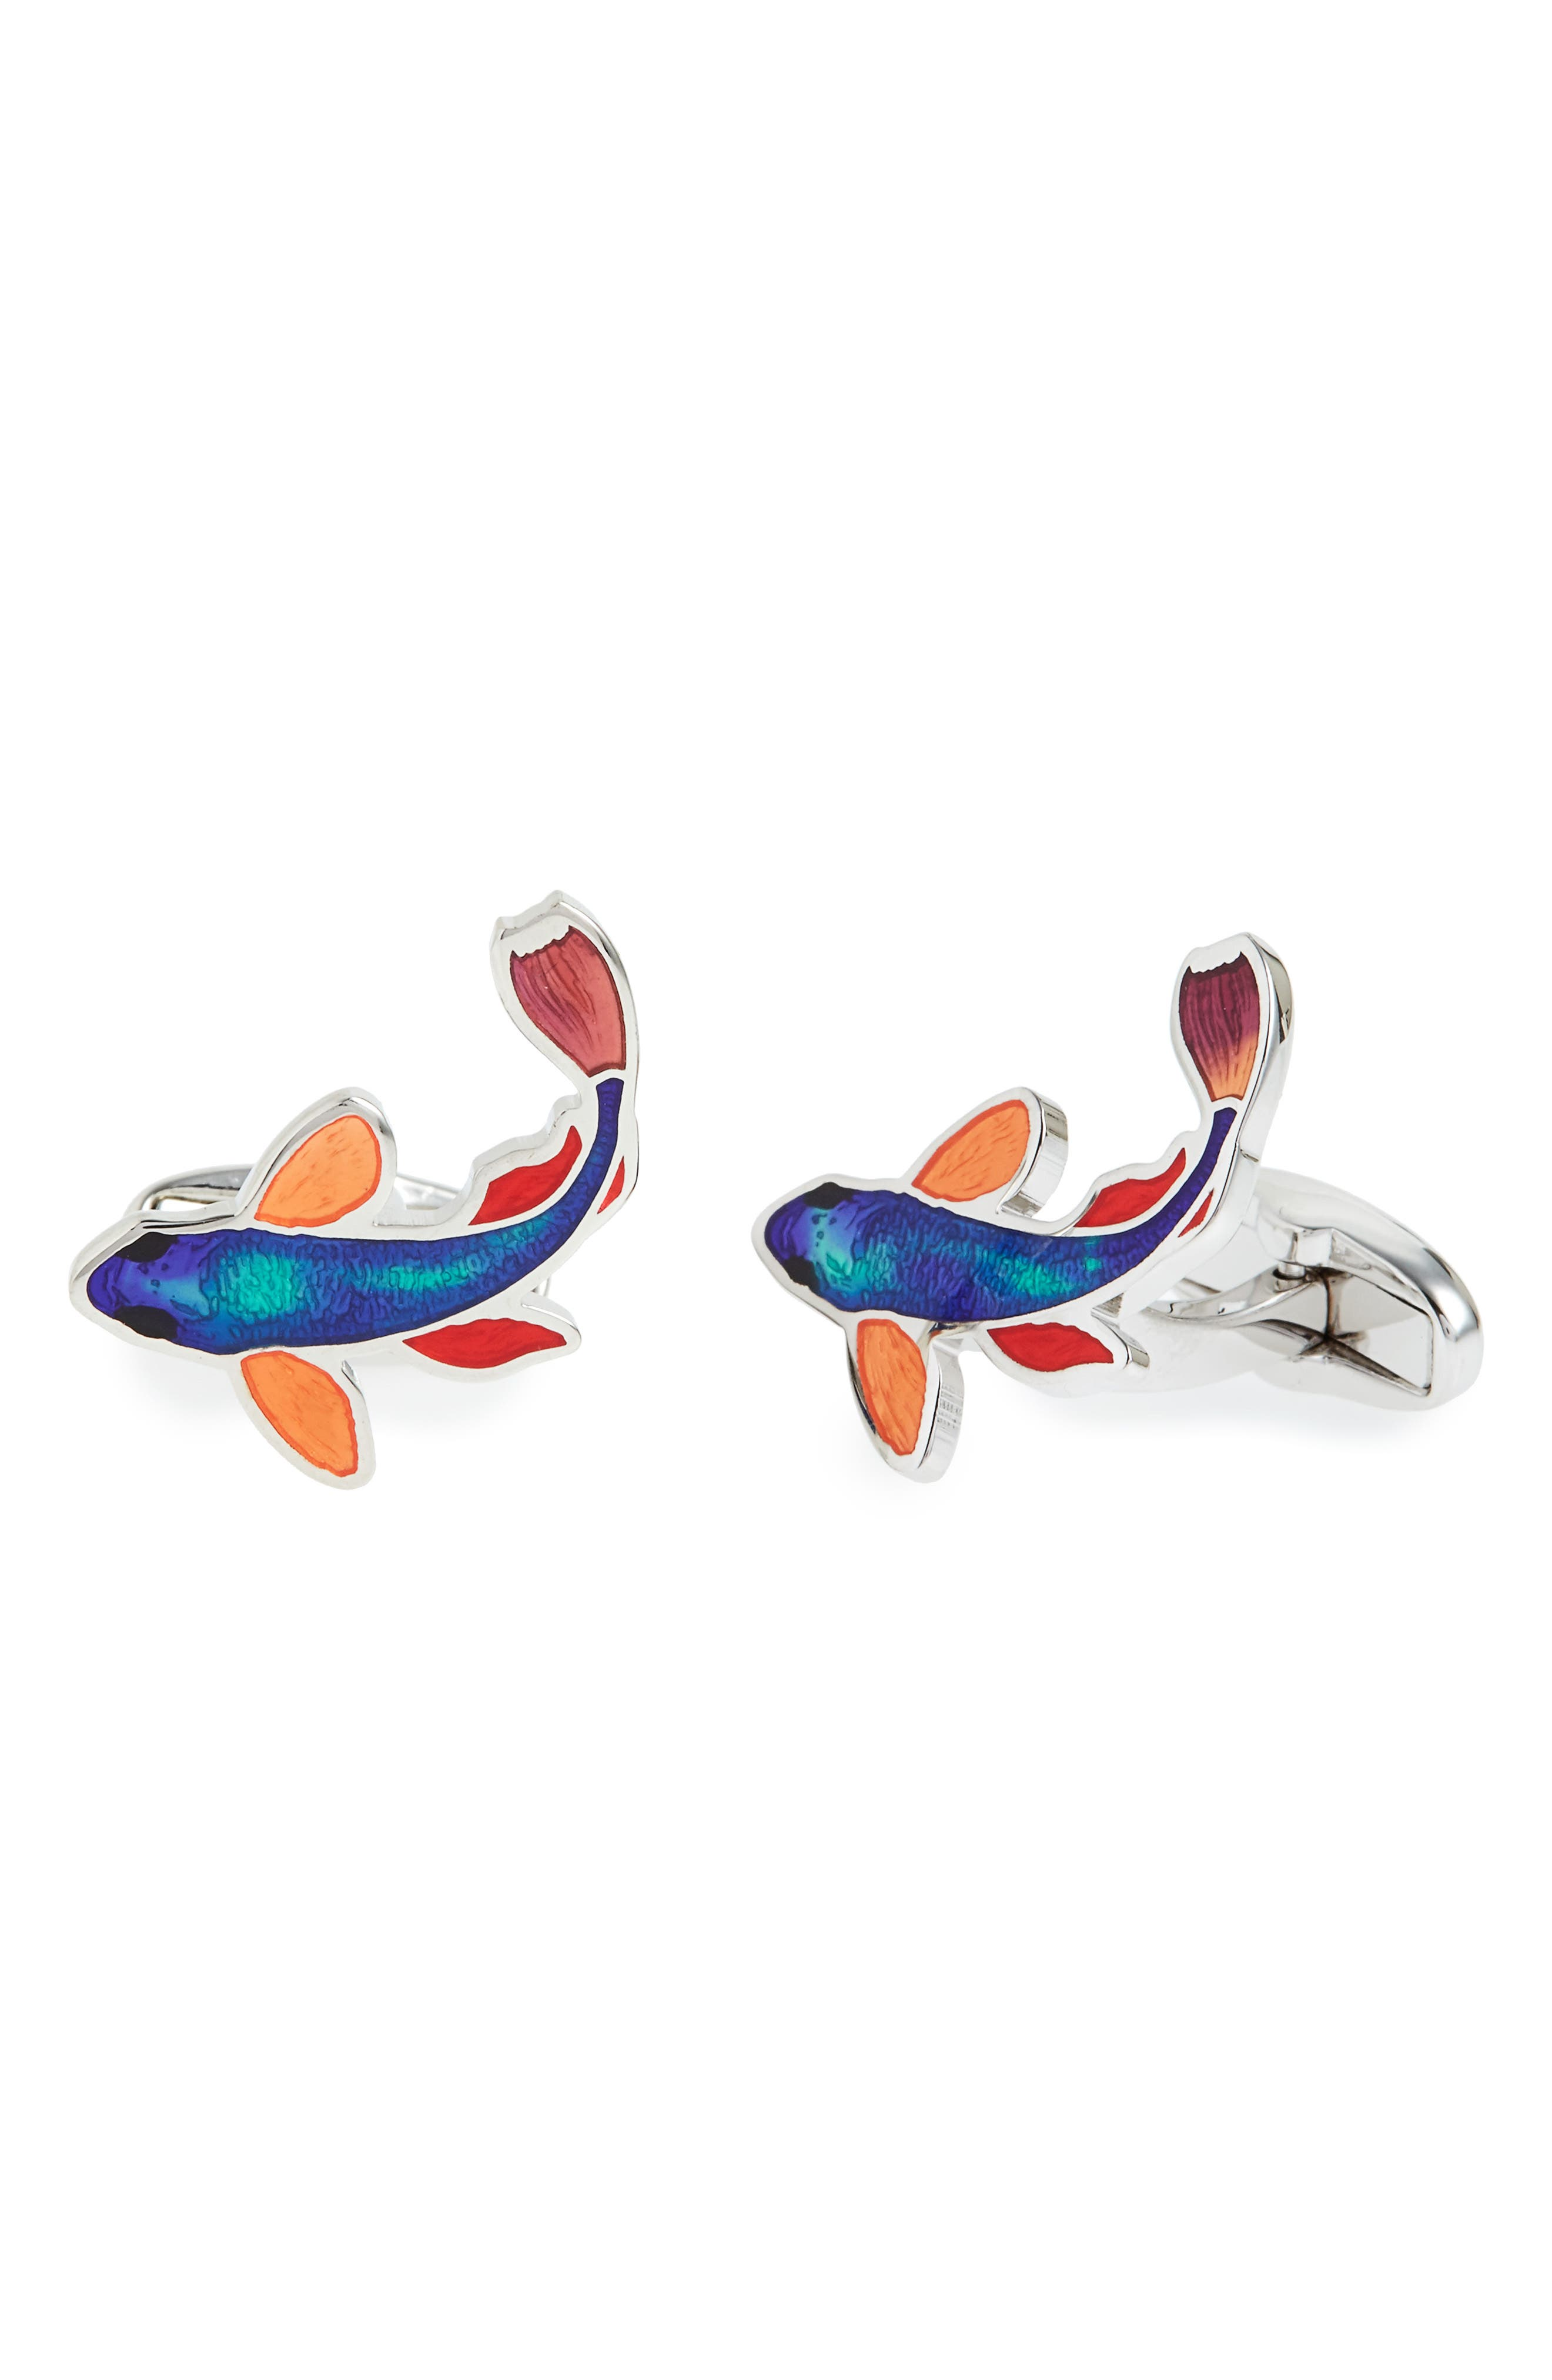 Alternate Image 1 Selected - Paul Smith Fish Cuff Links